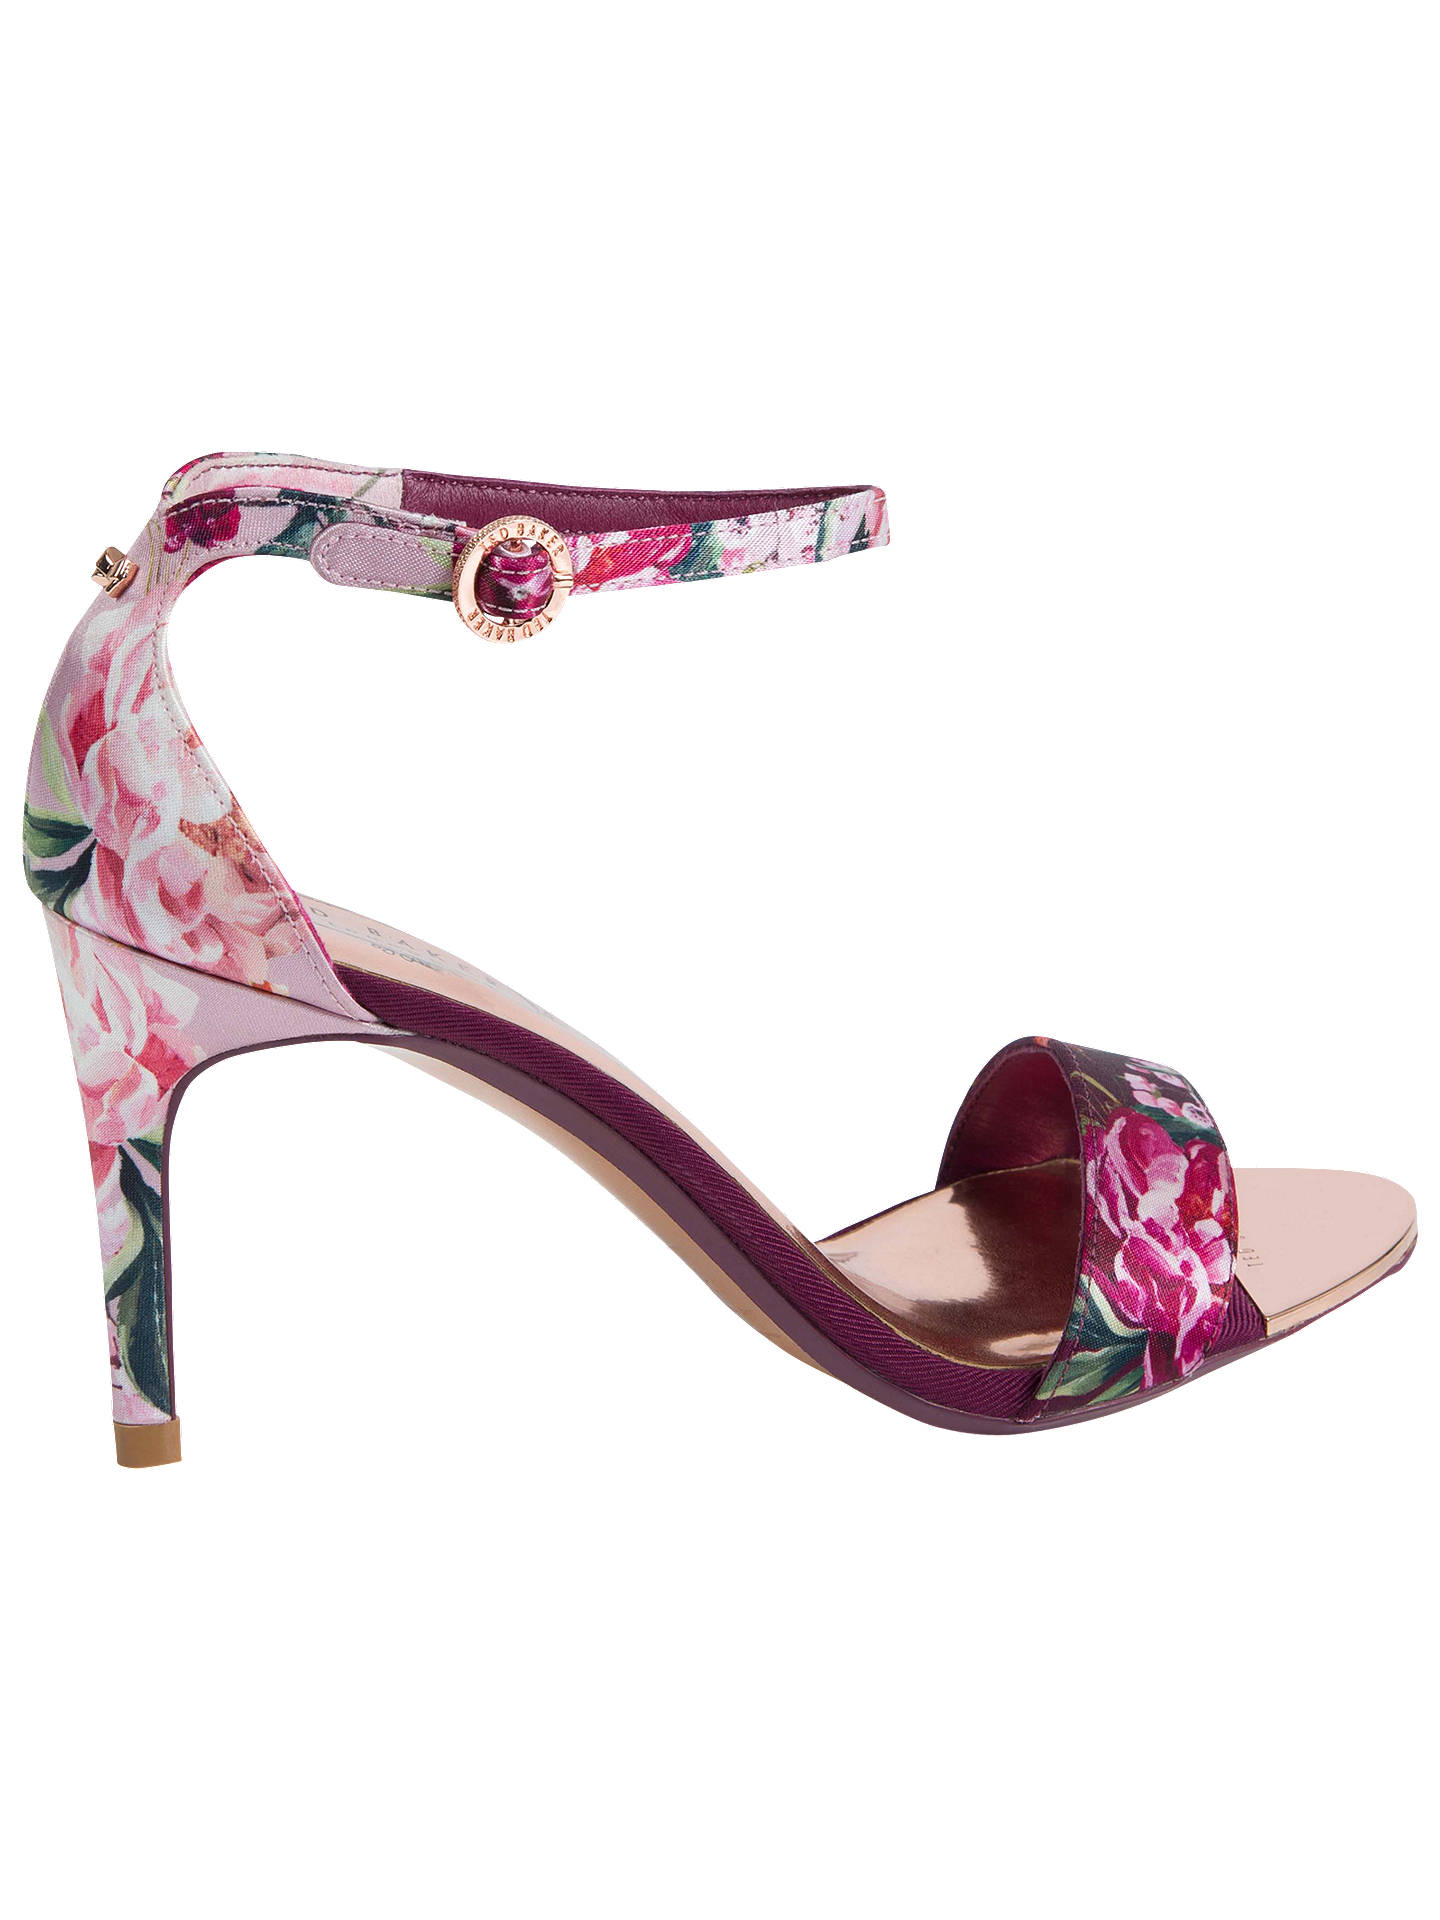 BuyTed Baker Mylli Ankle Strap Stiletto Heel Sandals, Pink Multi, 5 Online at johnlewis.com